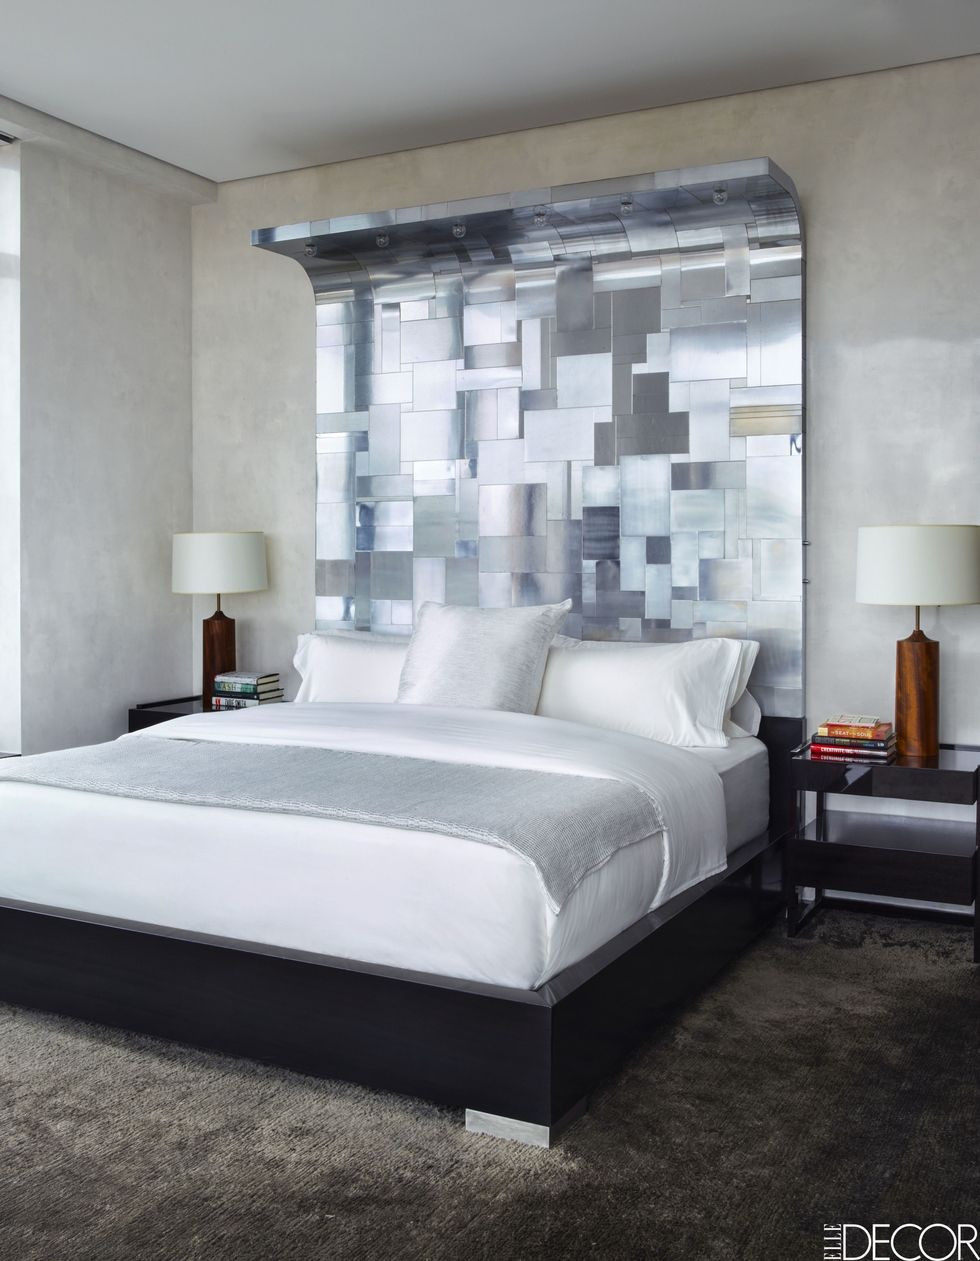 20.SIMPHOME.COM An Inspiring and Clever Designs of How to Make Bedroom Modern Design